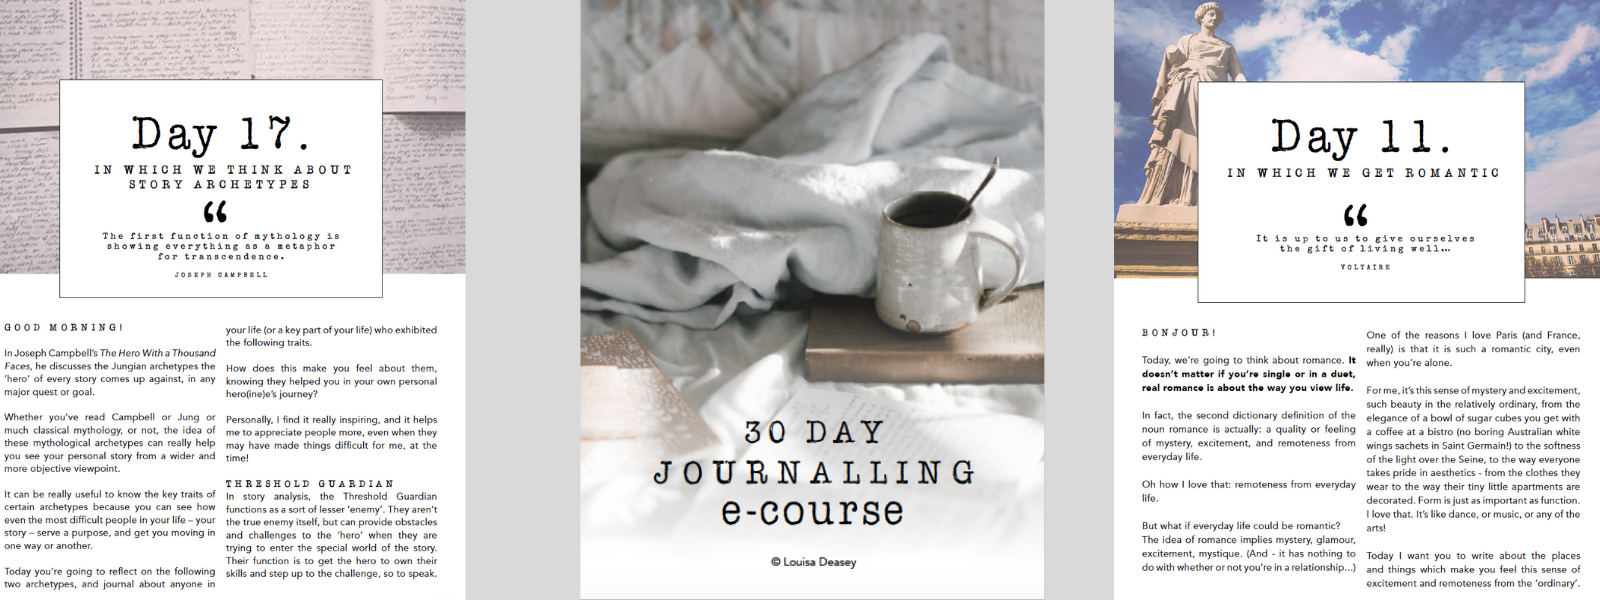 snapshot of some of the journalling course material